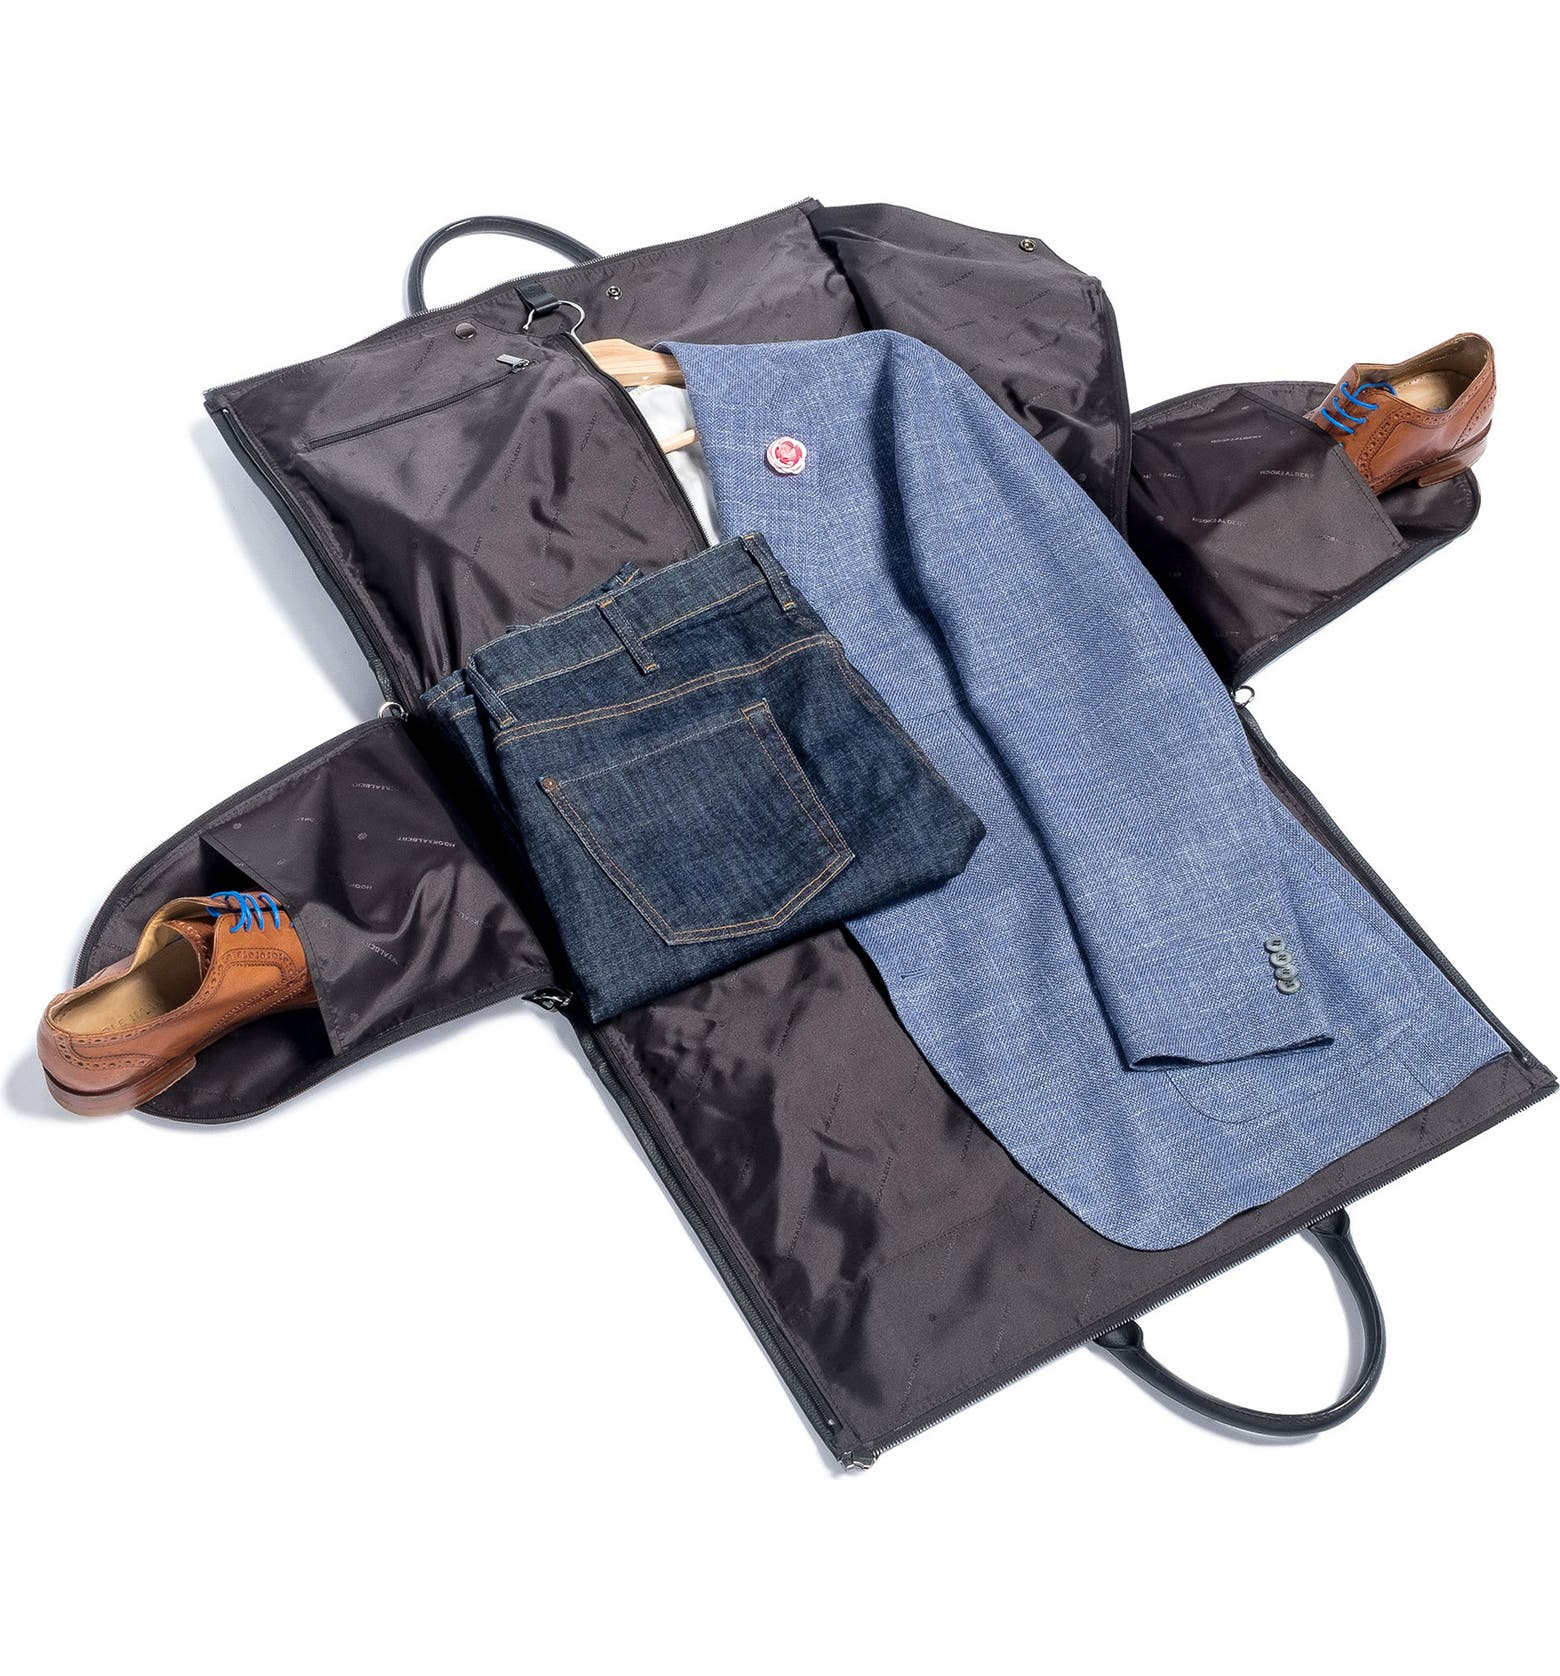 Hook & Albert Garment Bag